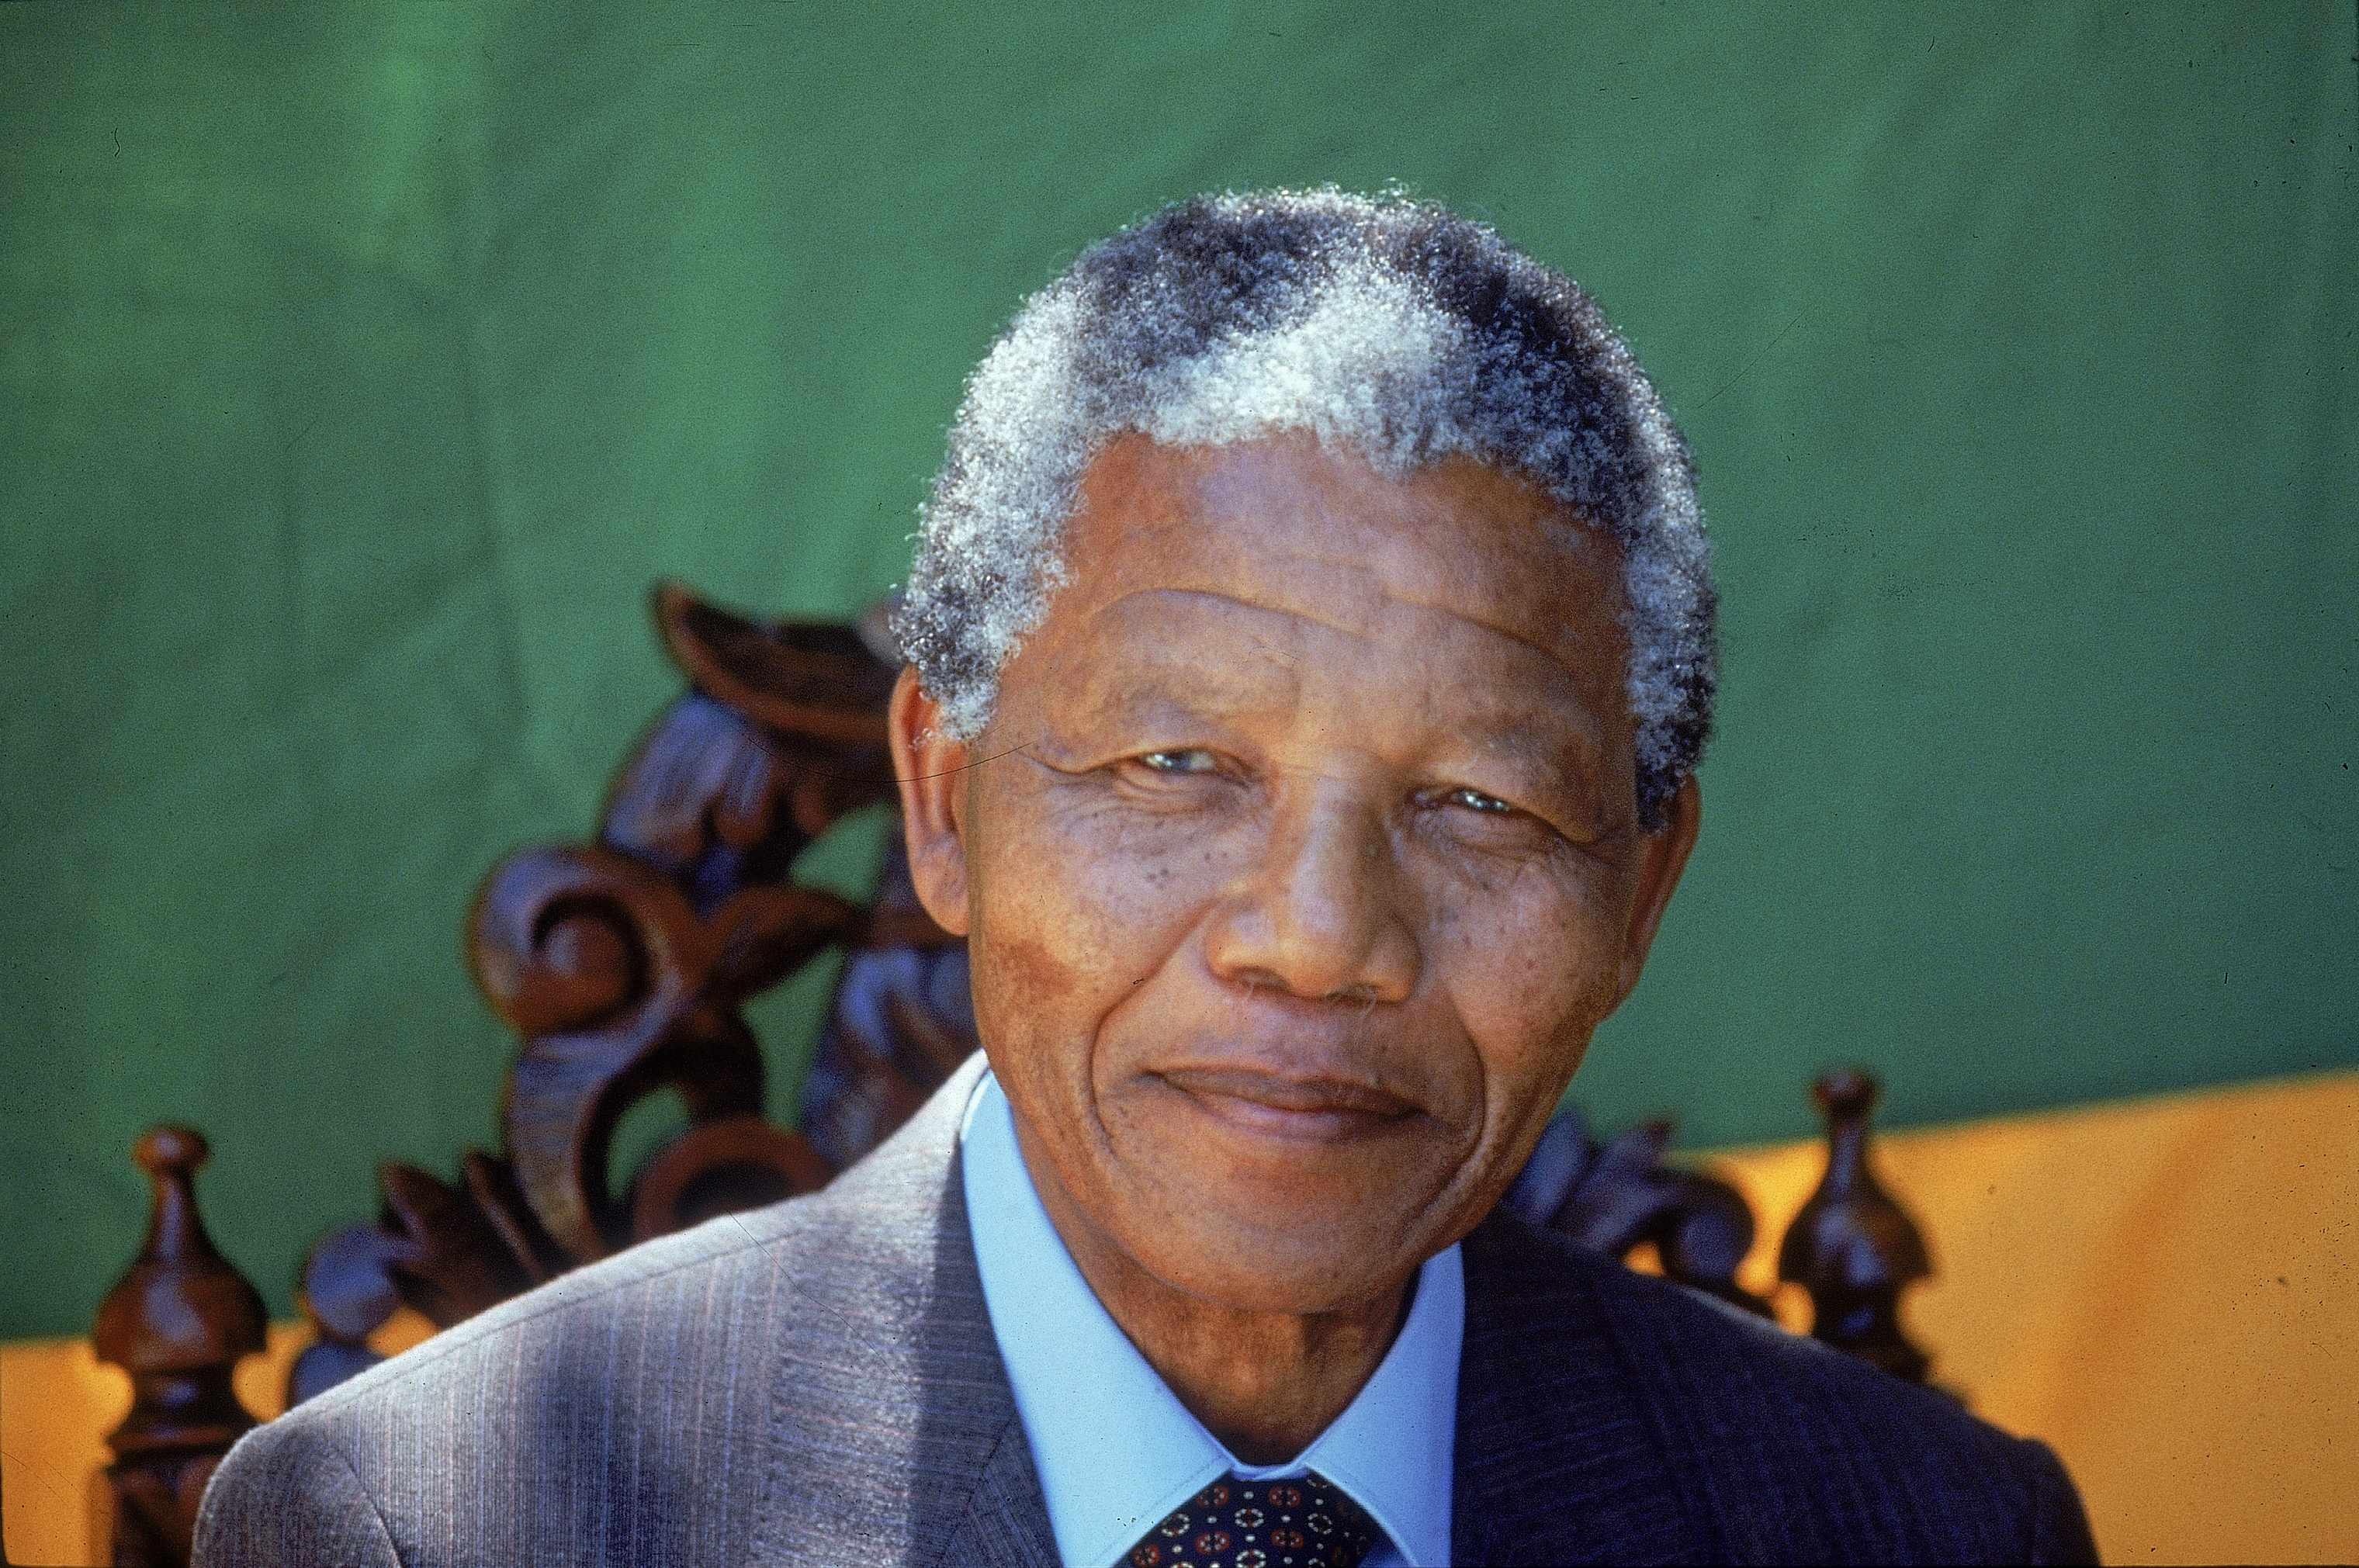 A photograph of Nelson Mandela. Peter Hain told the History Extra podcast about the South African leader's remarkable achievements in the face of tremendous adversity. (Photo by Allan Tannenbaum/The LIFE Images Collection/Getty Images)